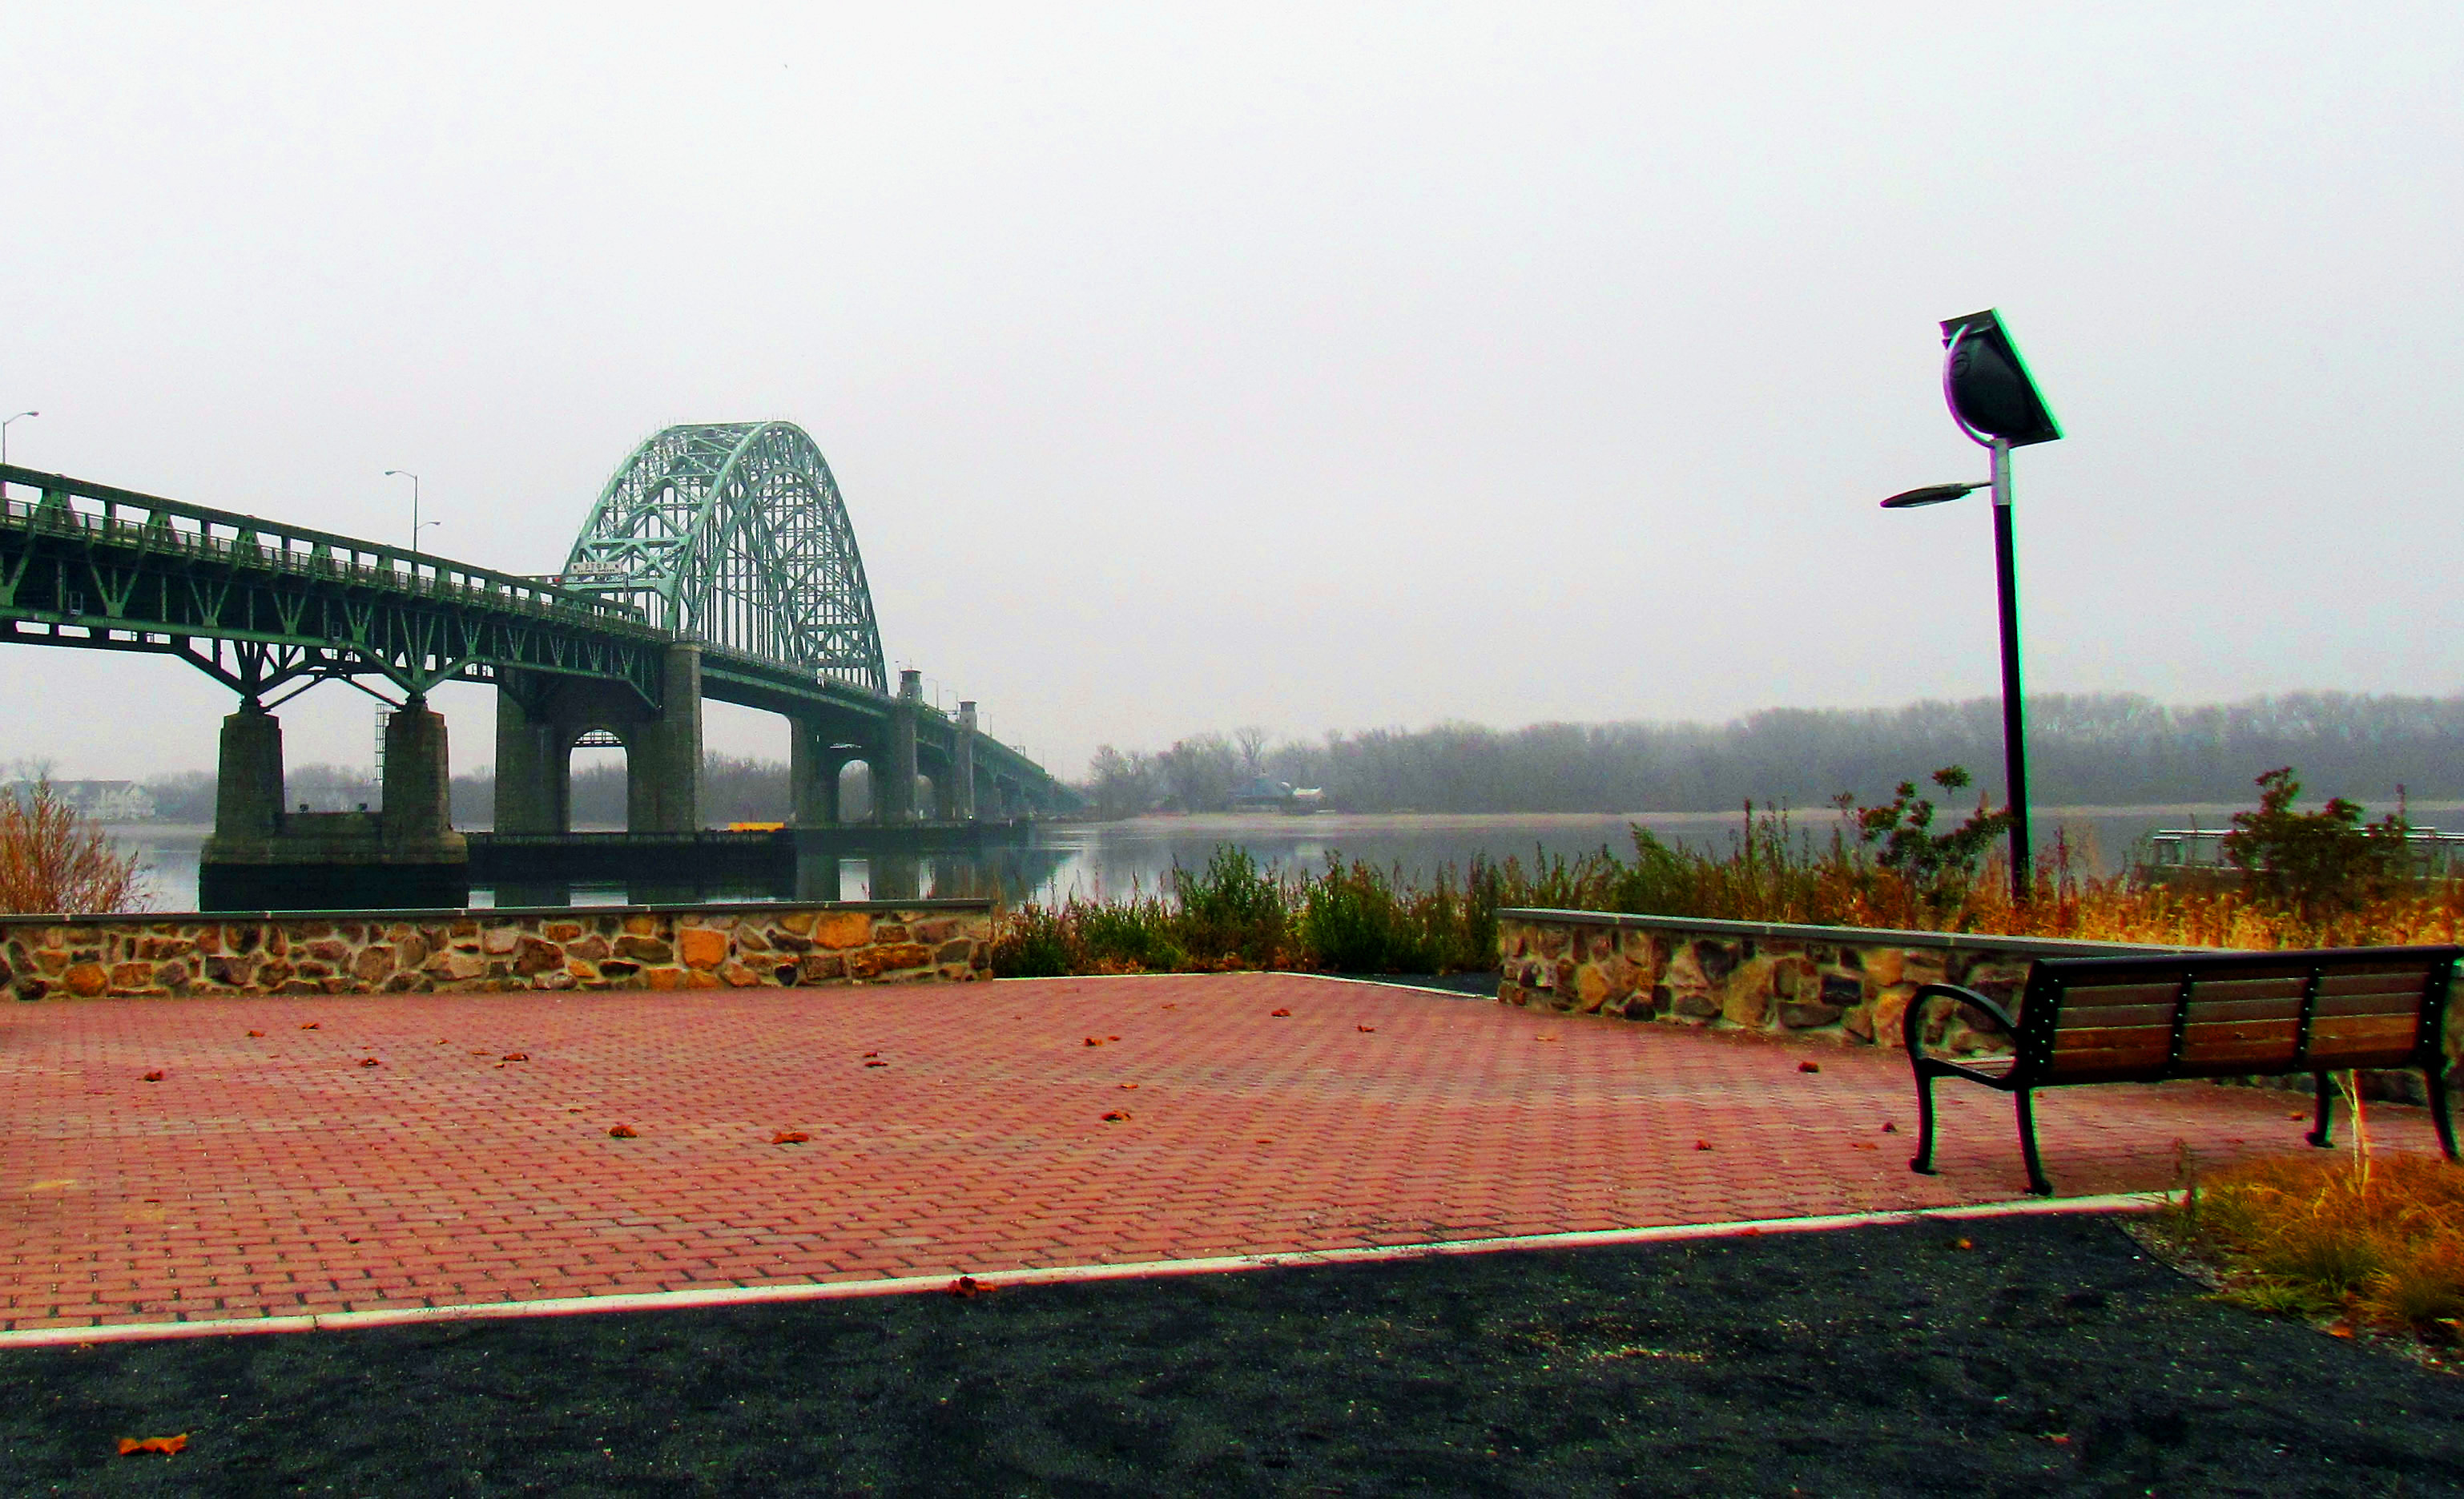 Lardner's Point River Observation Deck